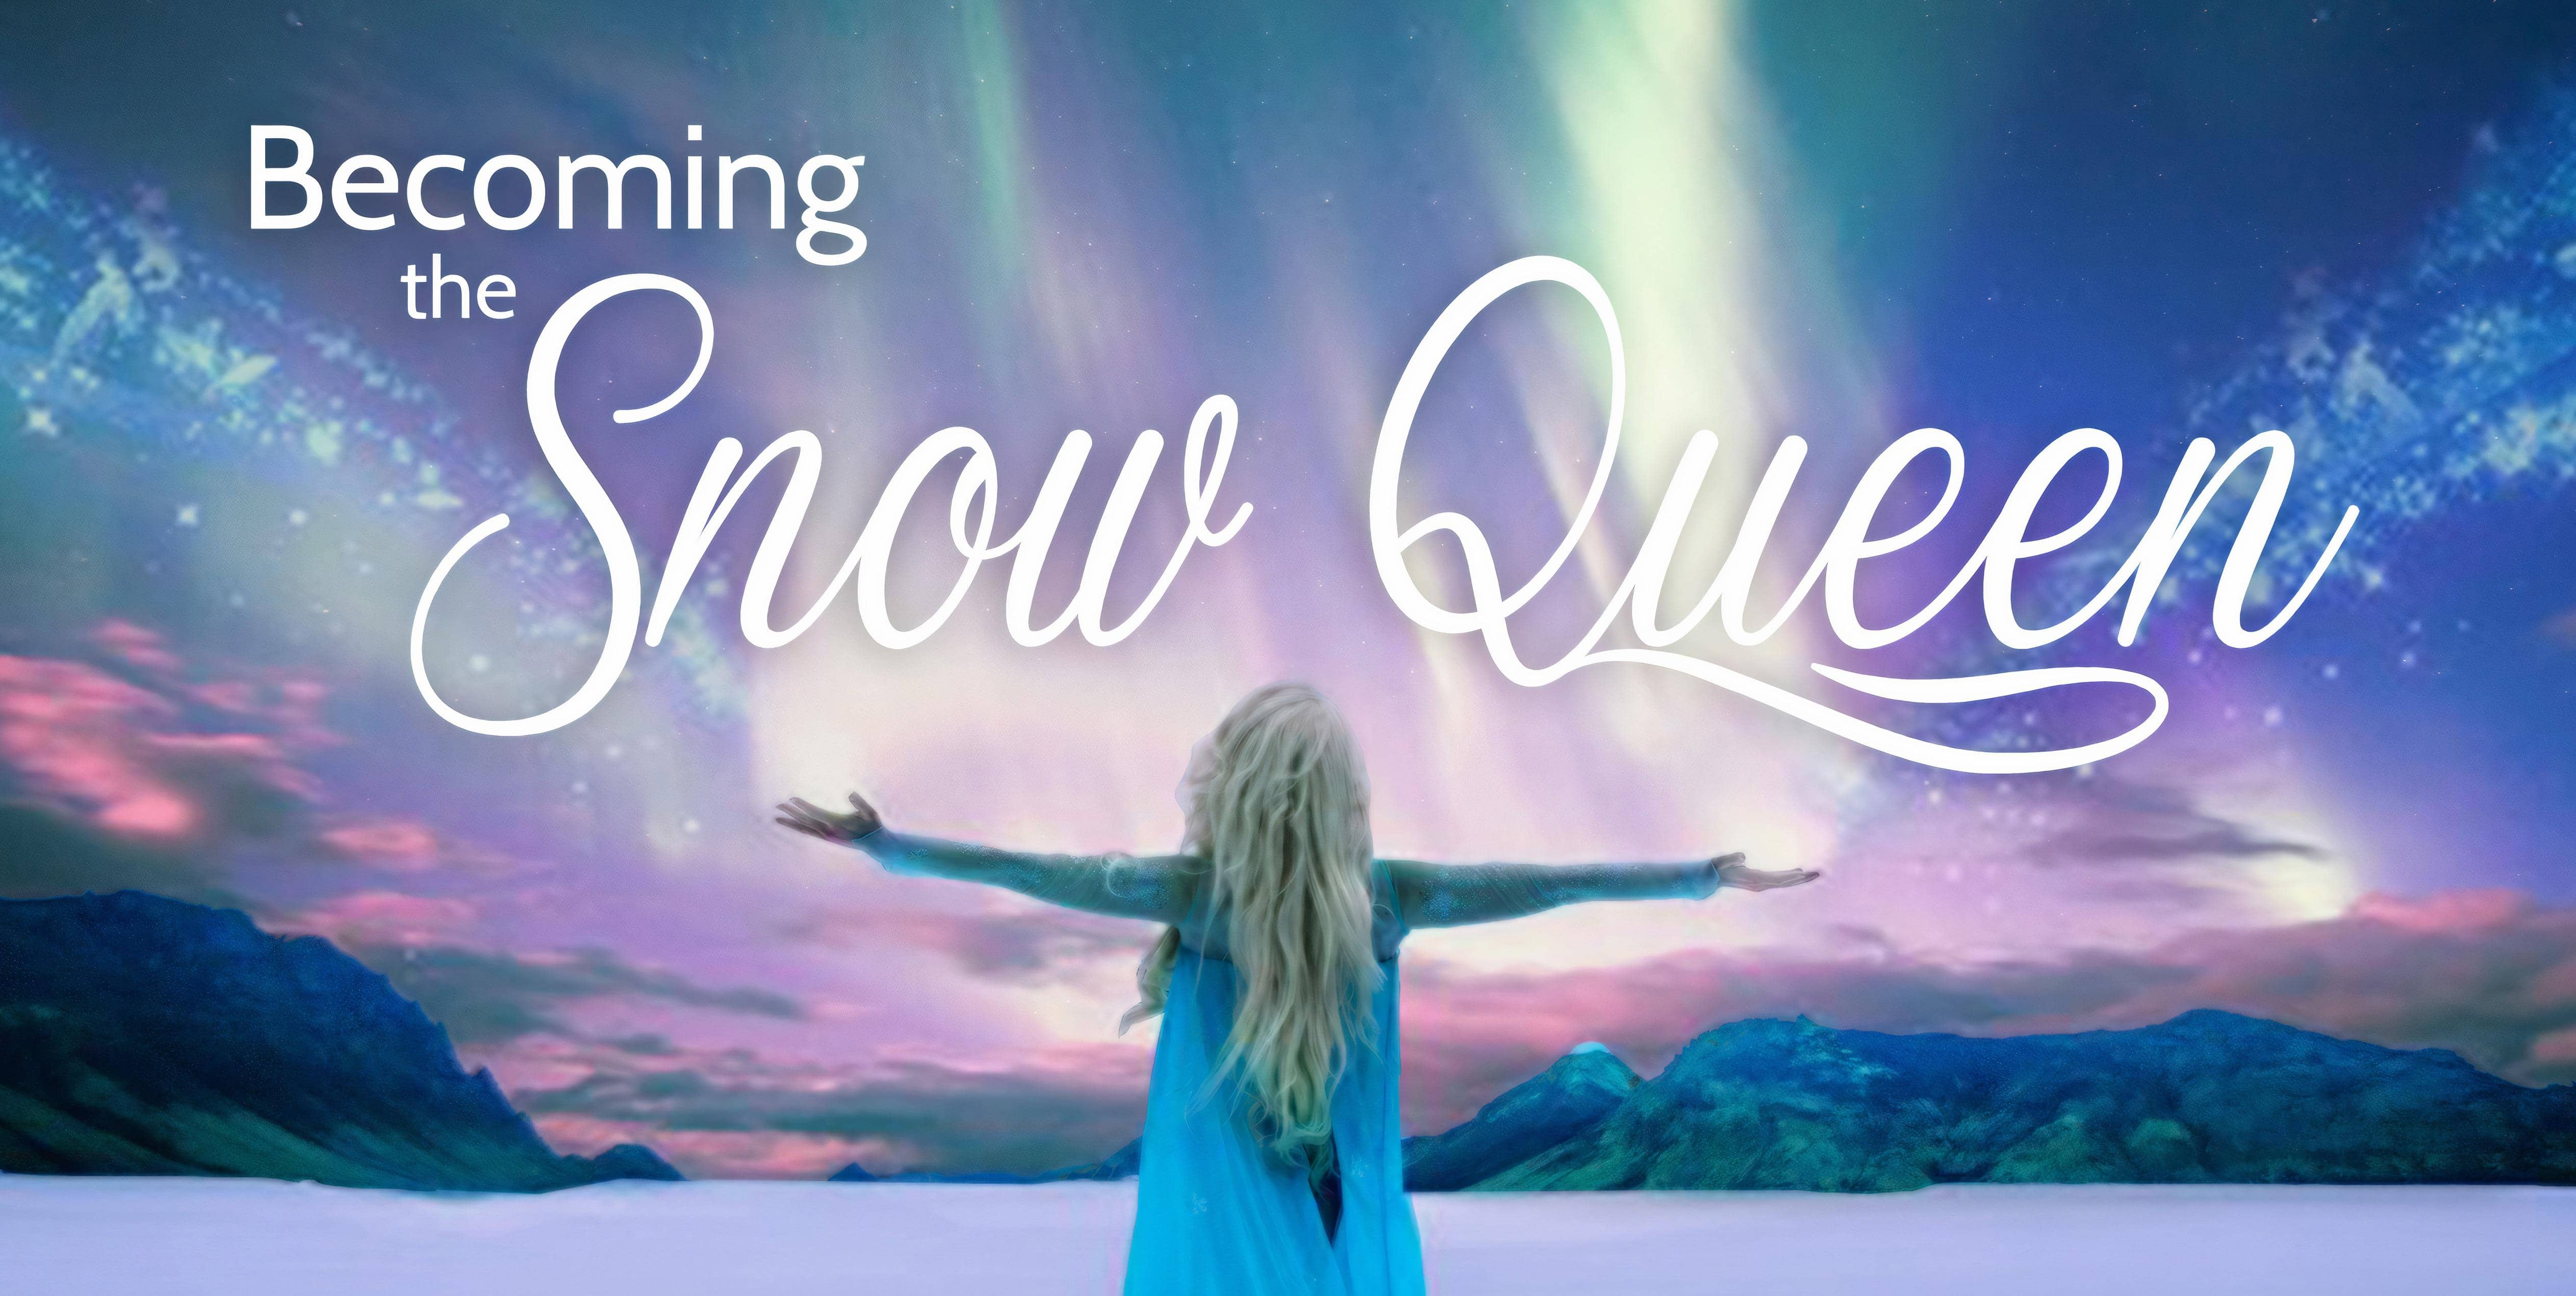 Becoming the Snow Queen